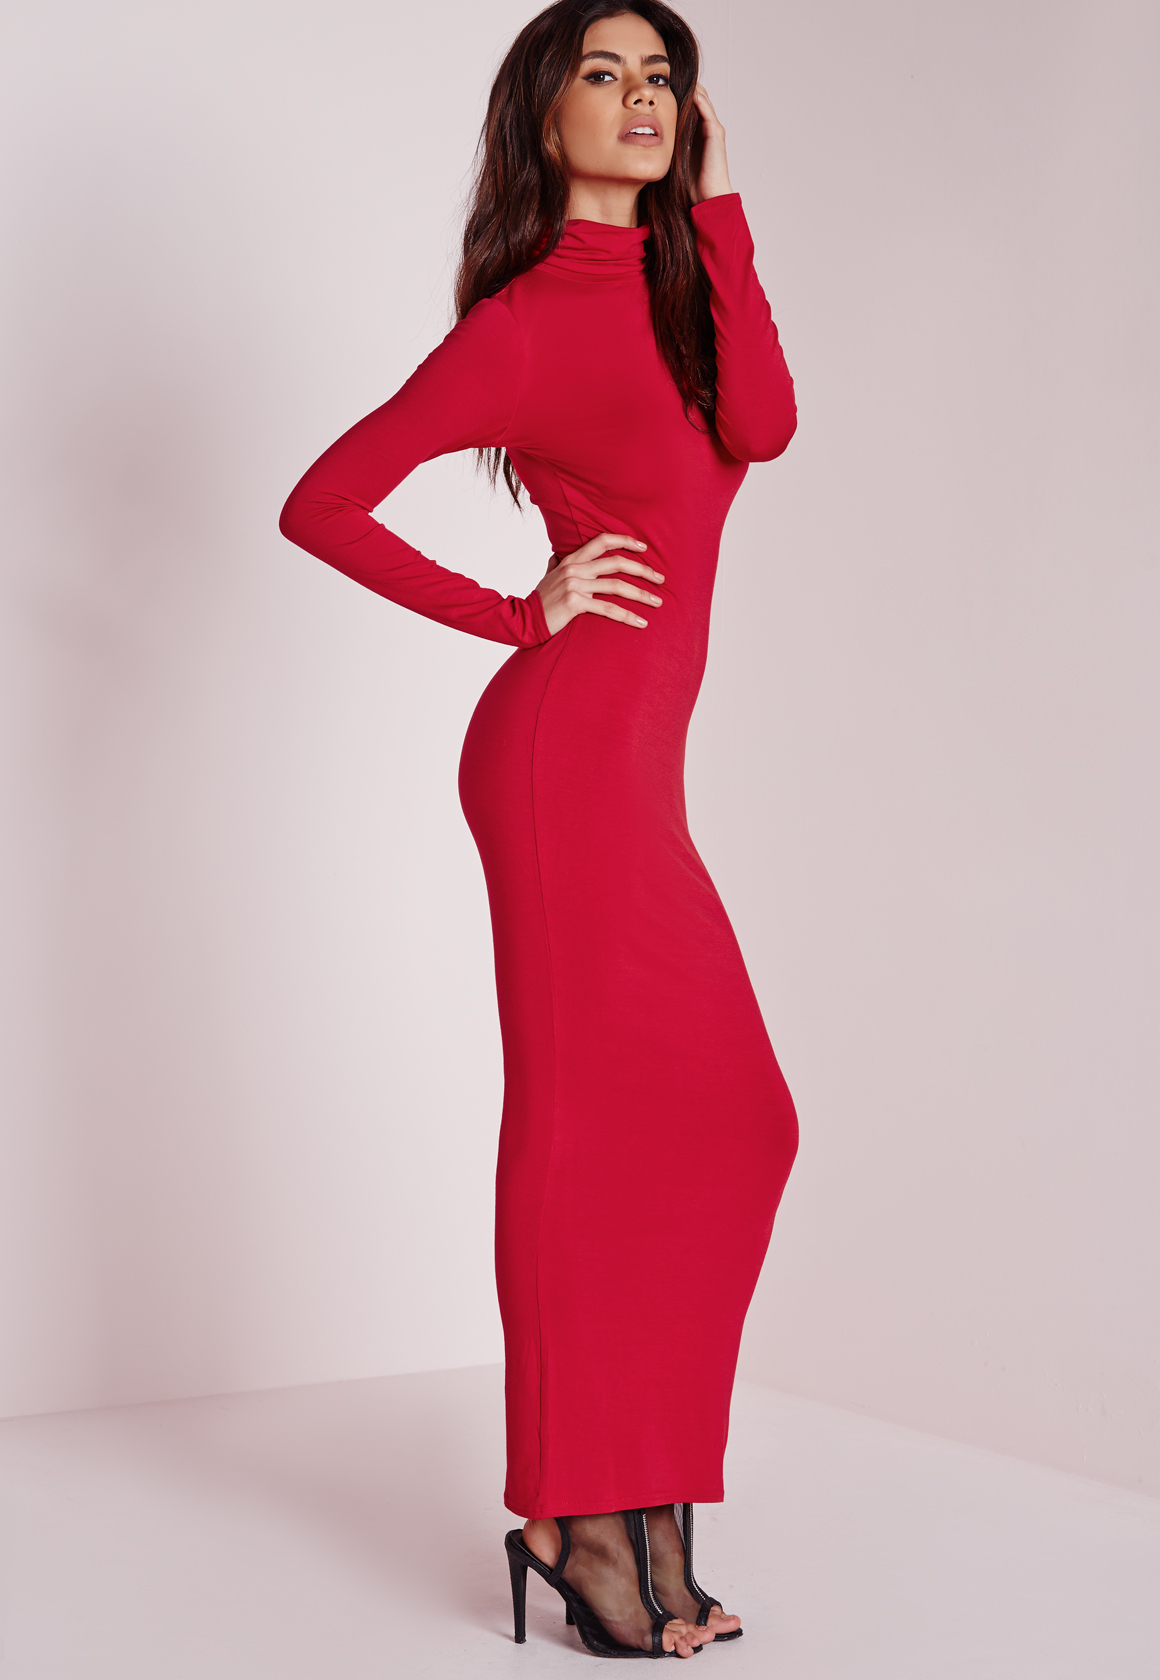 Lyst - Missguided Roll Neck Long Sleeve Bodycon Maxi Red in Red 6409e9560